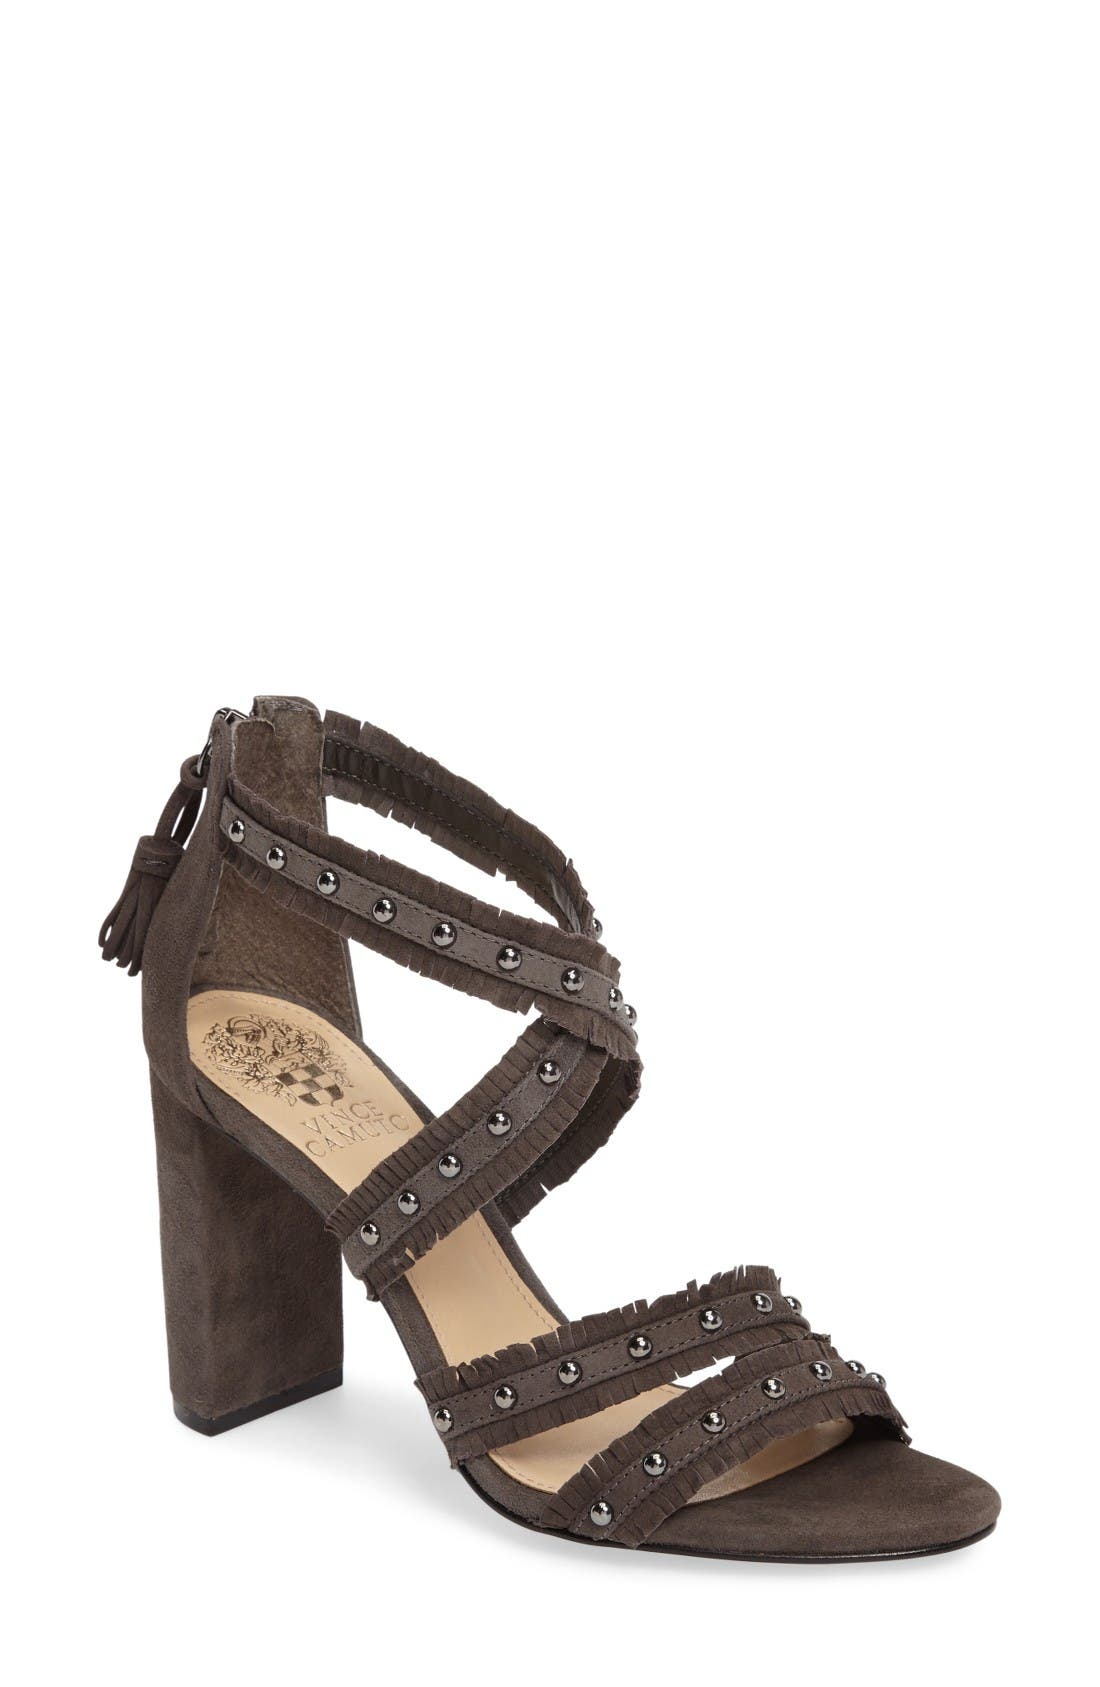 Alternate Image 1 Selected - Vince Camuto Machila Block Heel Sandal (Women)